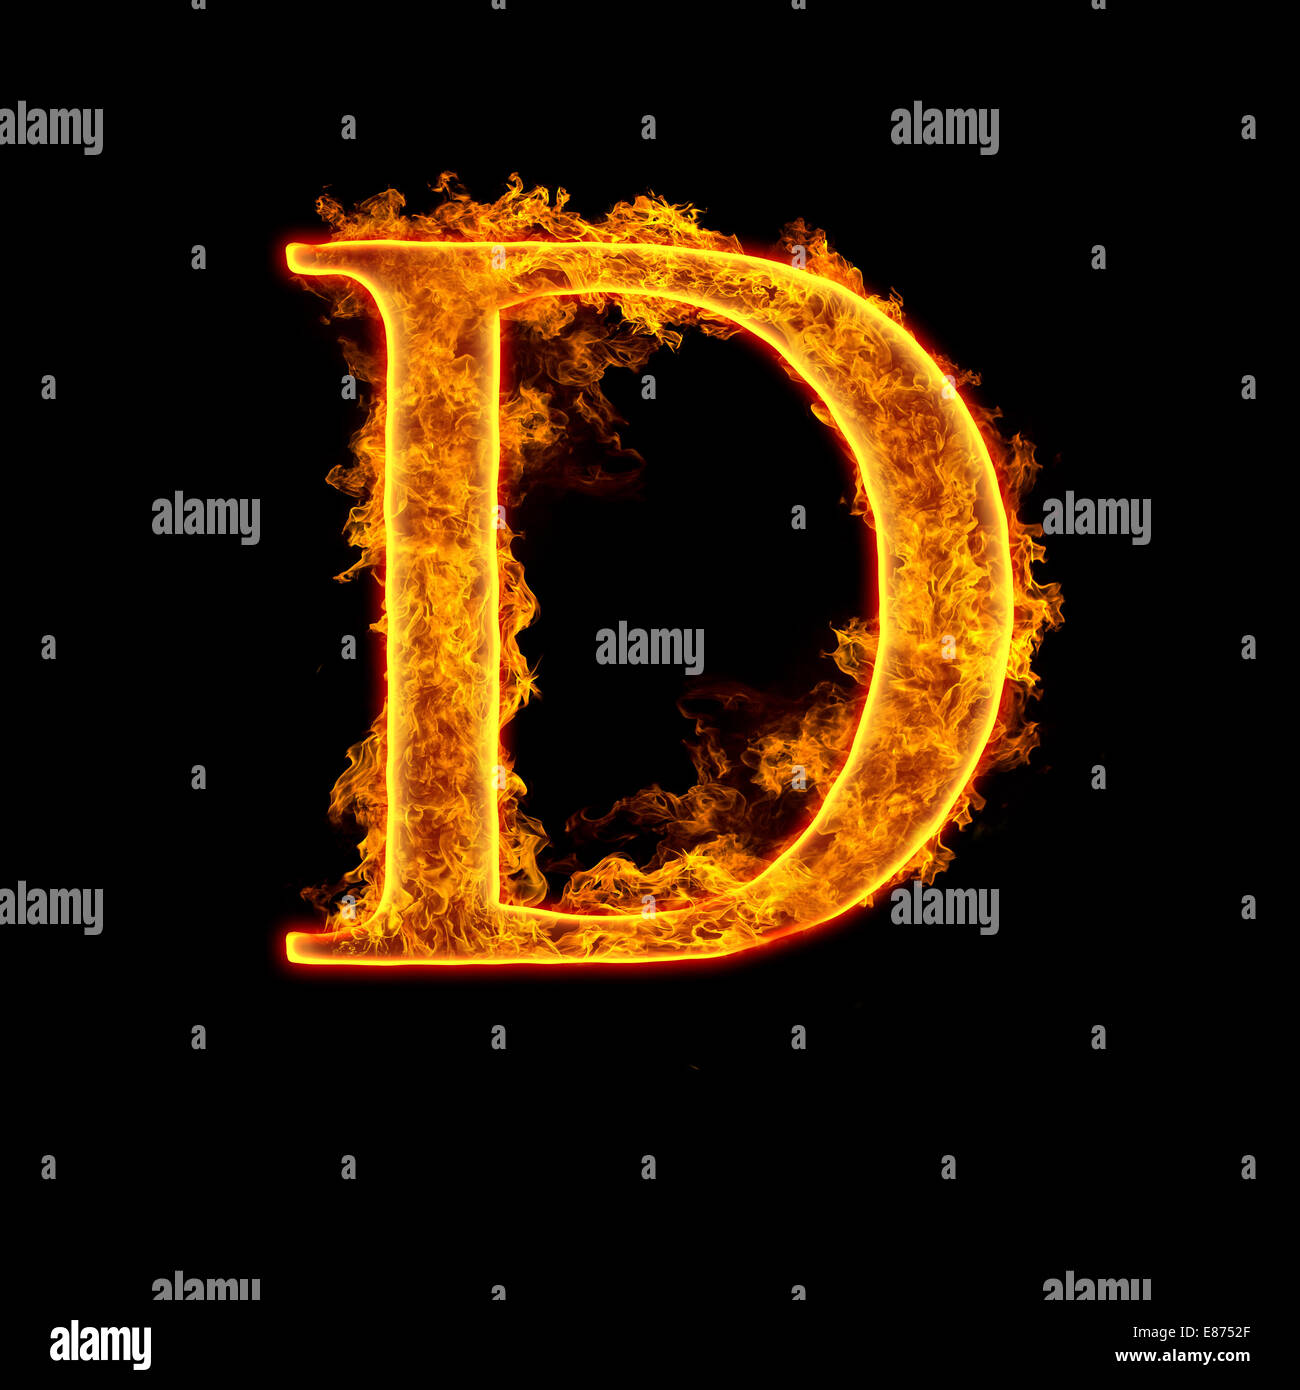 Fire alphabet letter d isolated on black background stock photo fire alphabet letter d isolated on black background altavistaventures Image collections